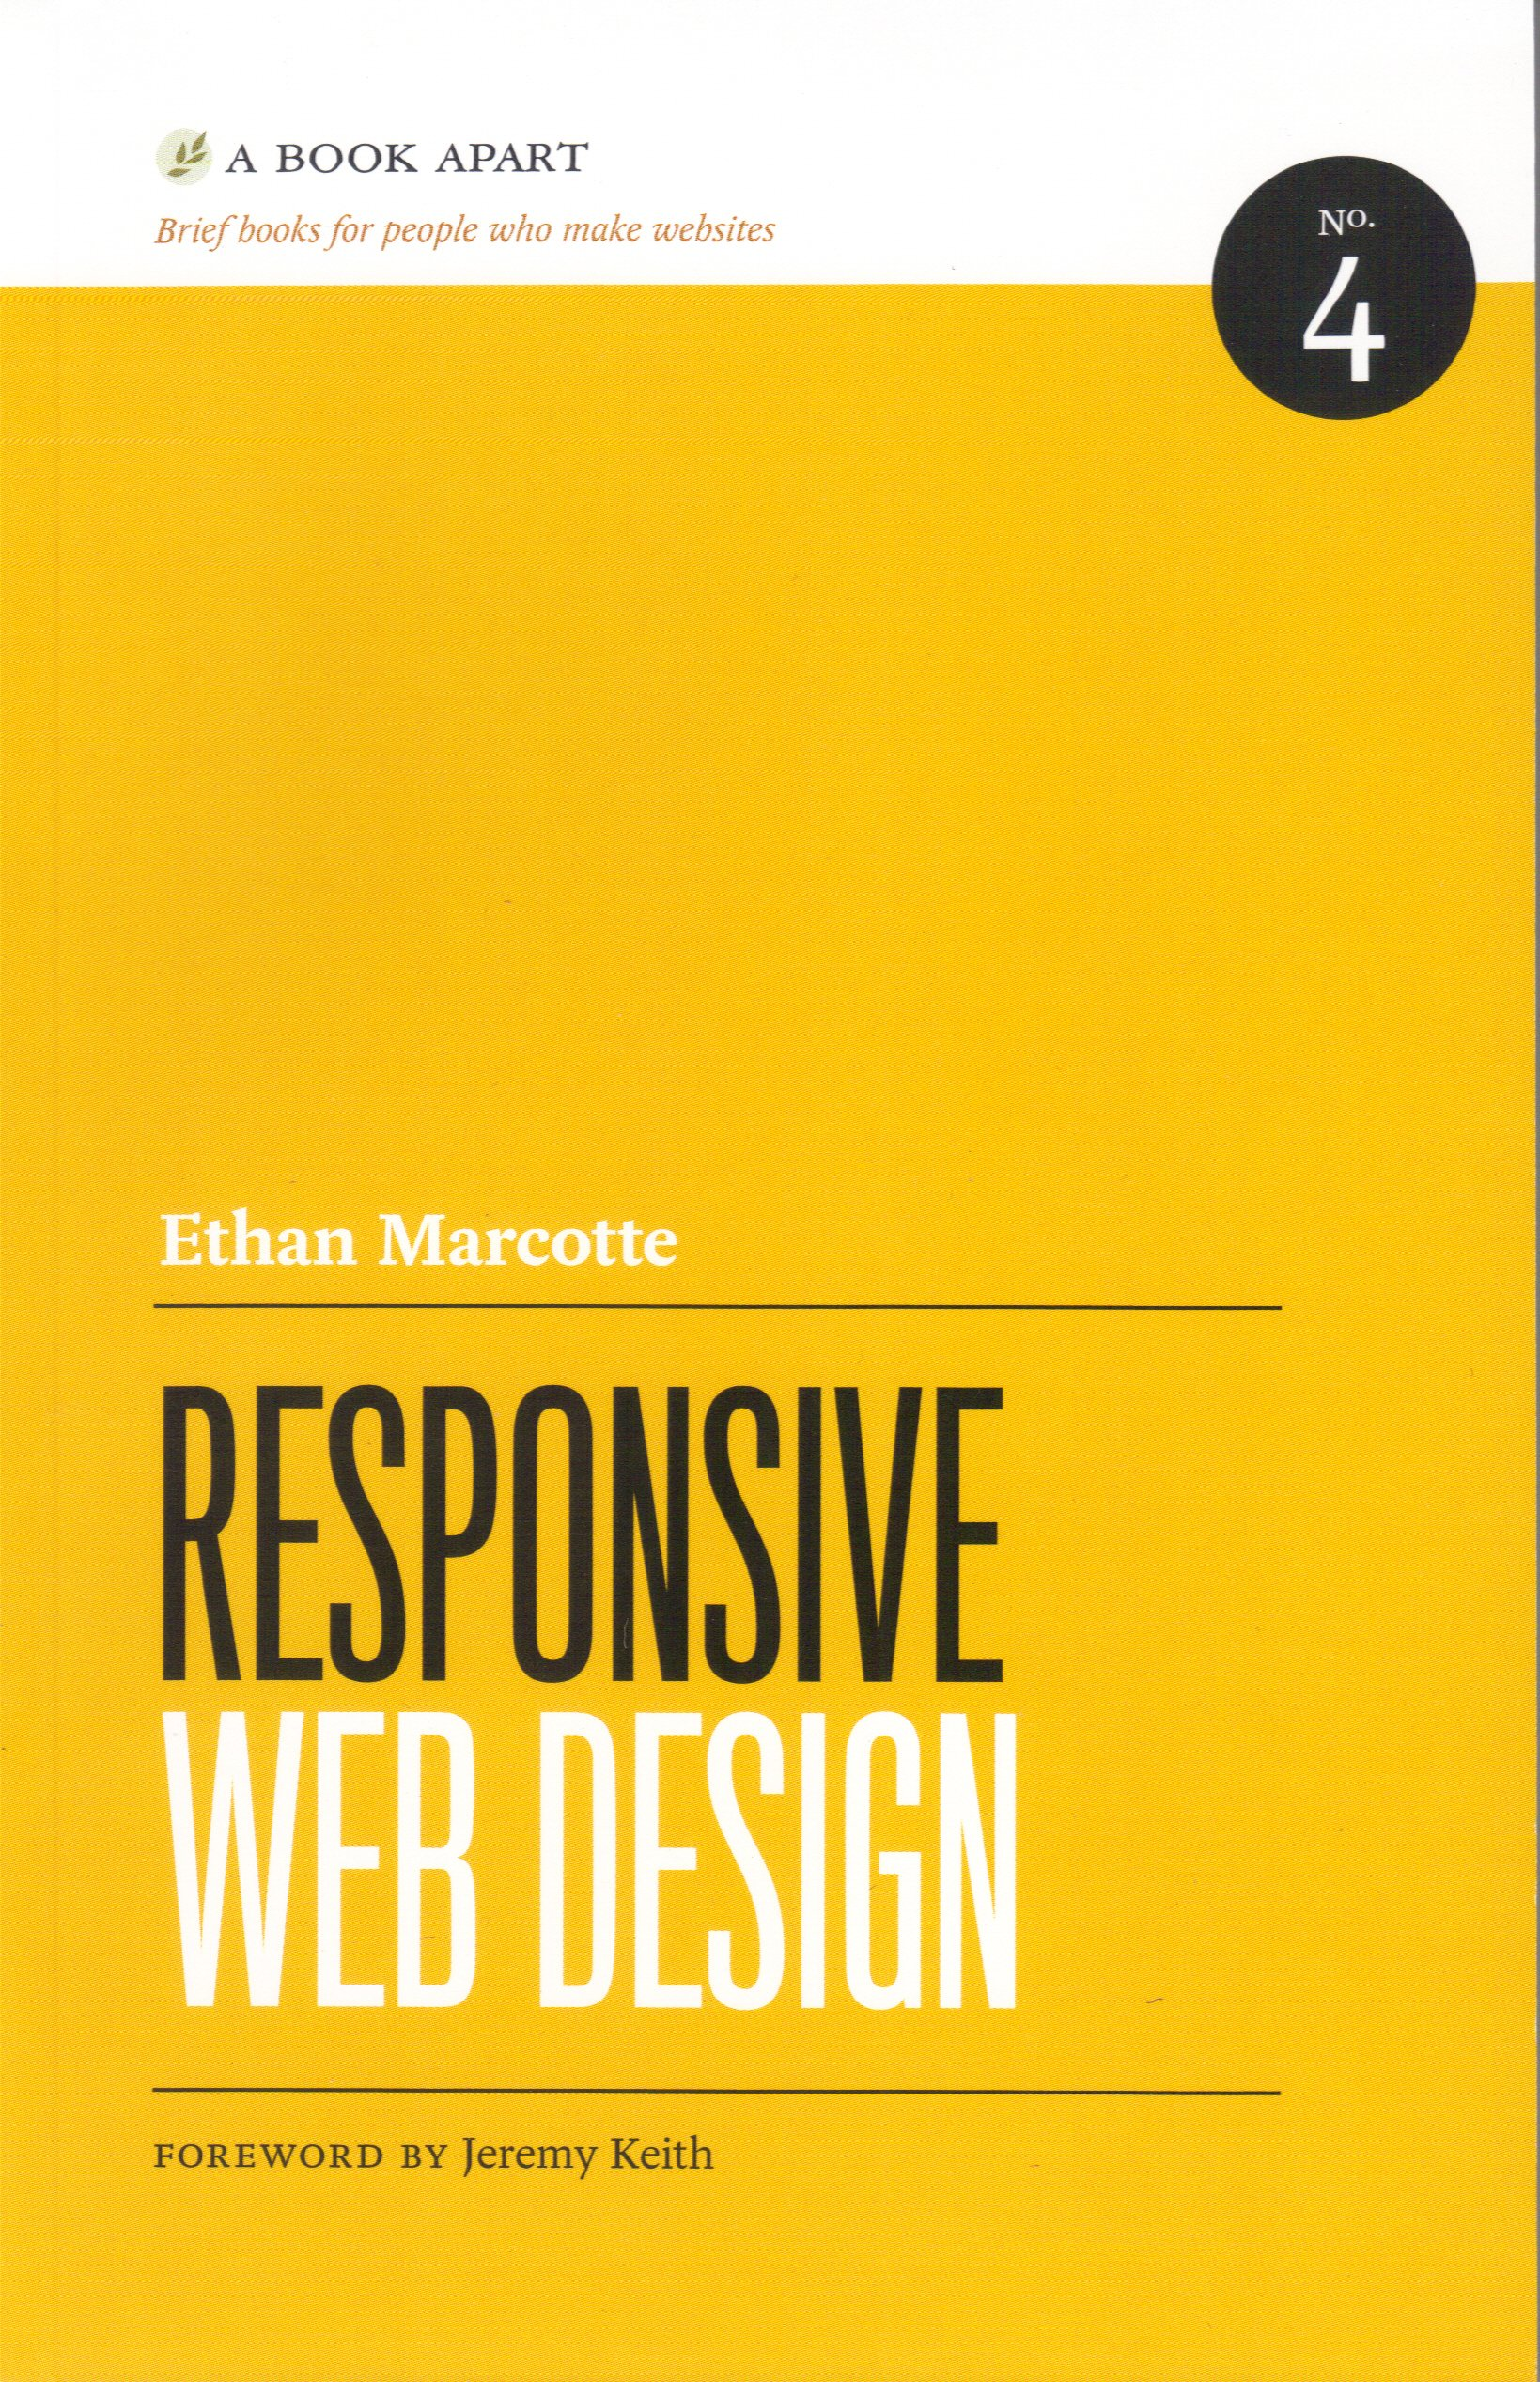 Responsive Web Design Brief Books For People Who Make Websites   Responsive  Web Design A Book